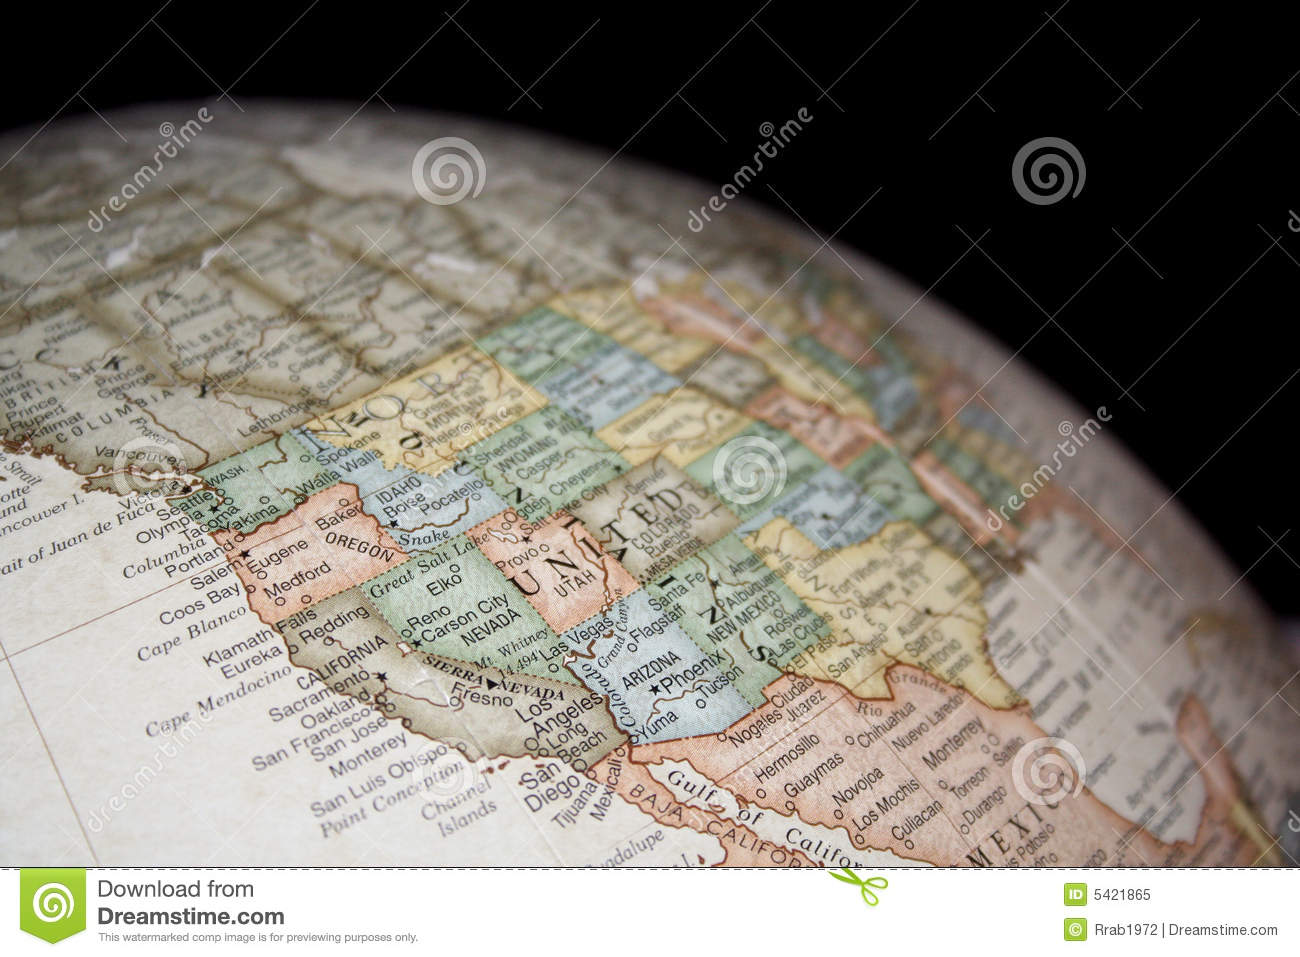 Globe Or Map Of United States Stock Image - Image of west, texas ...